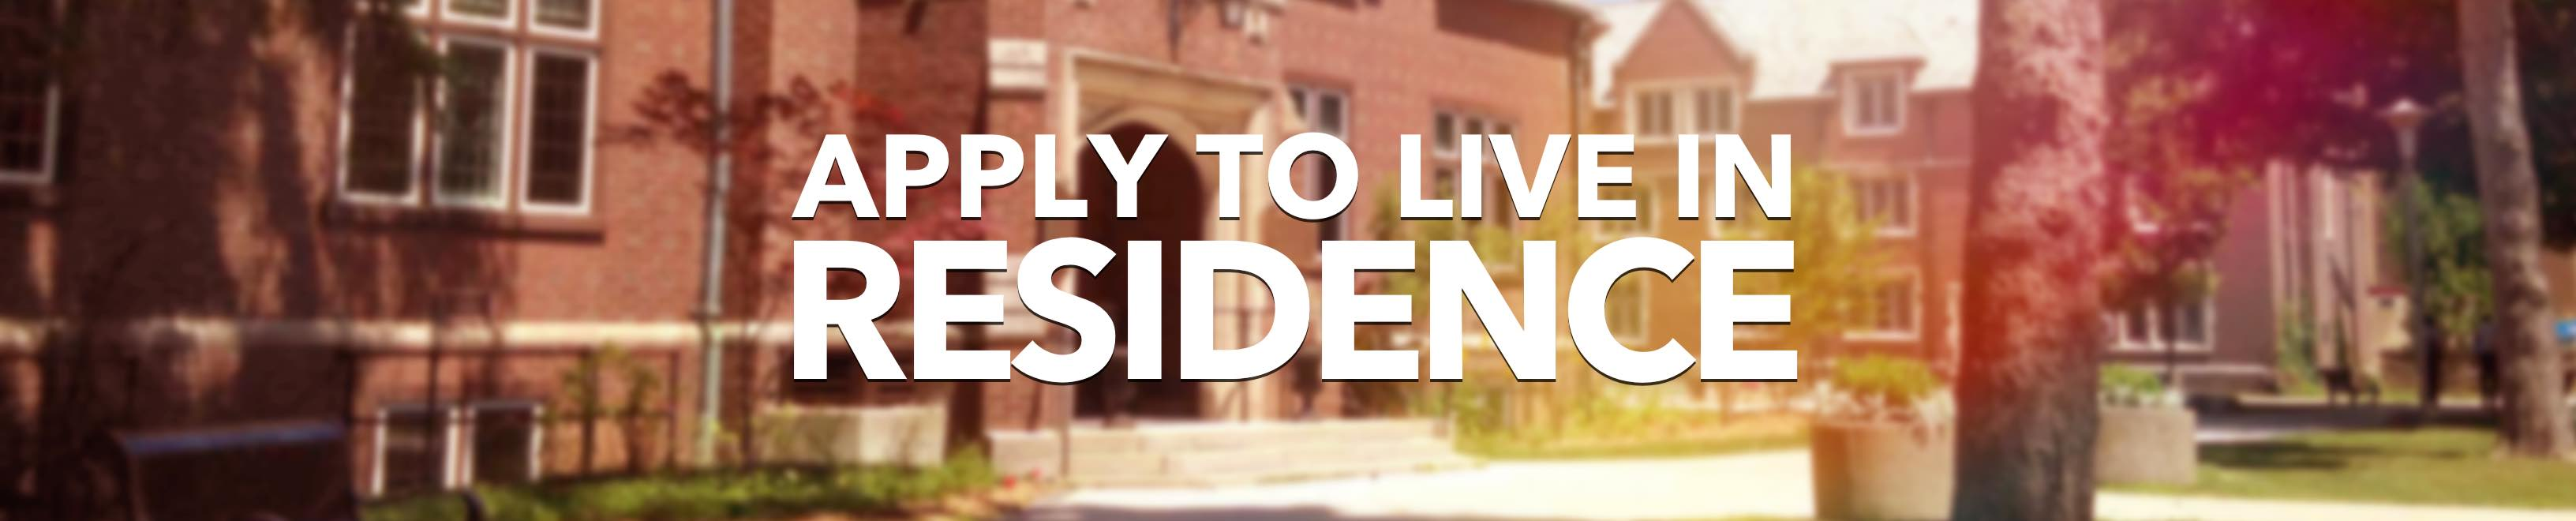 Apply to live in residence